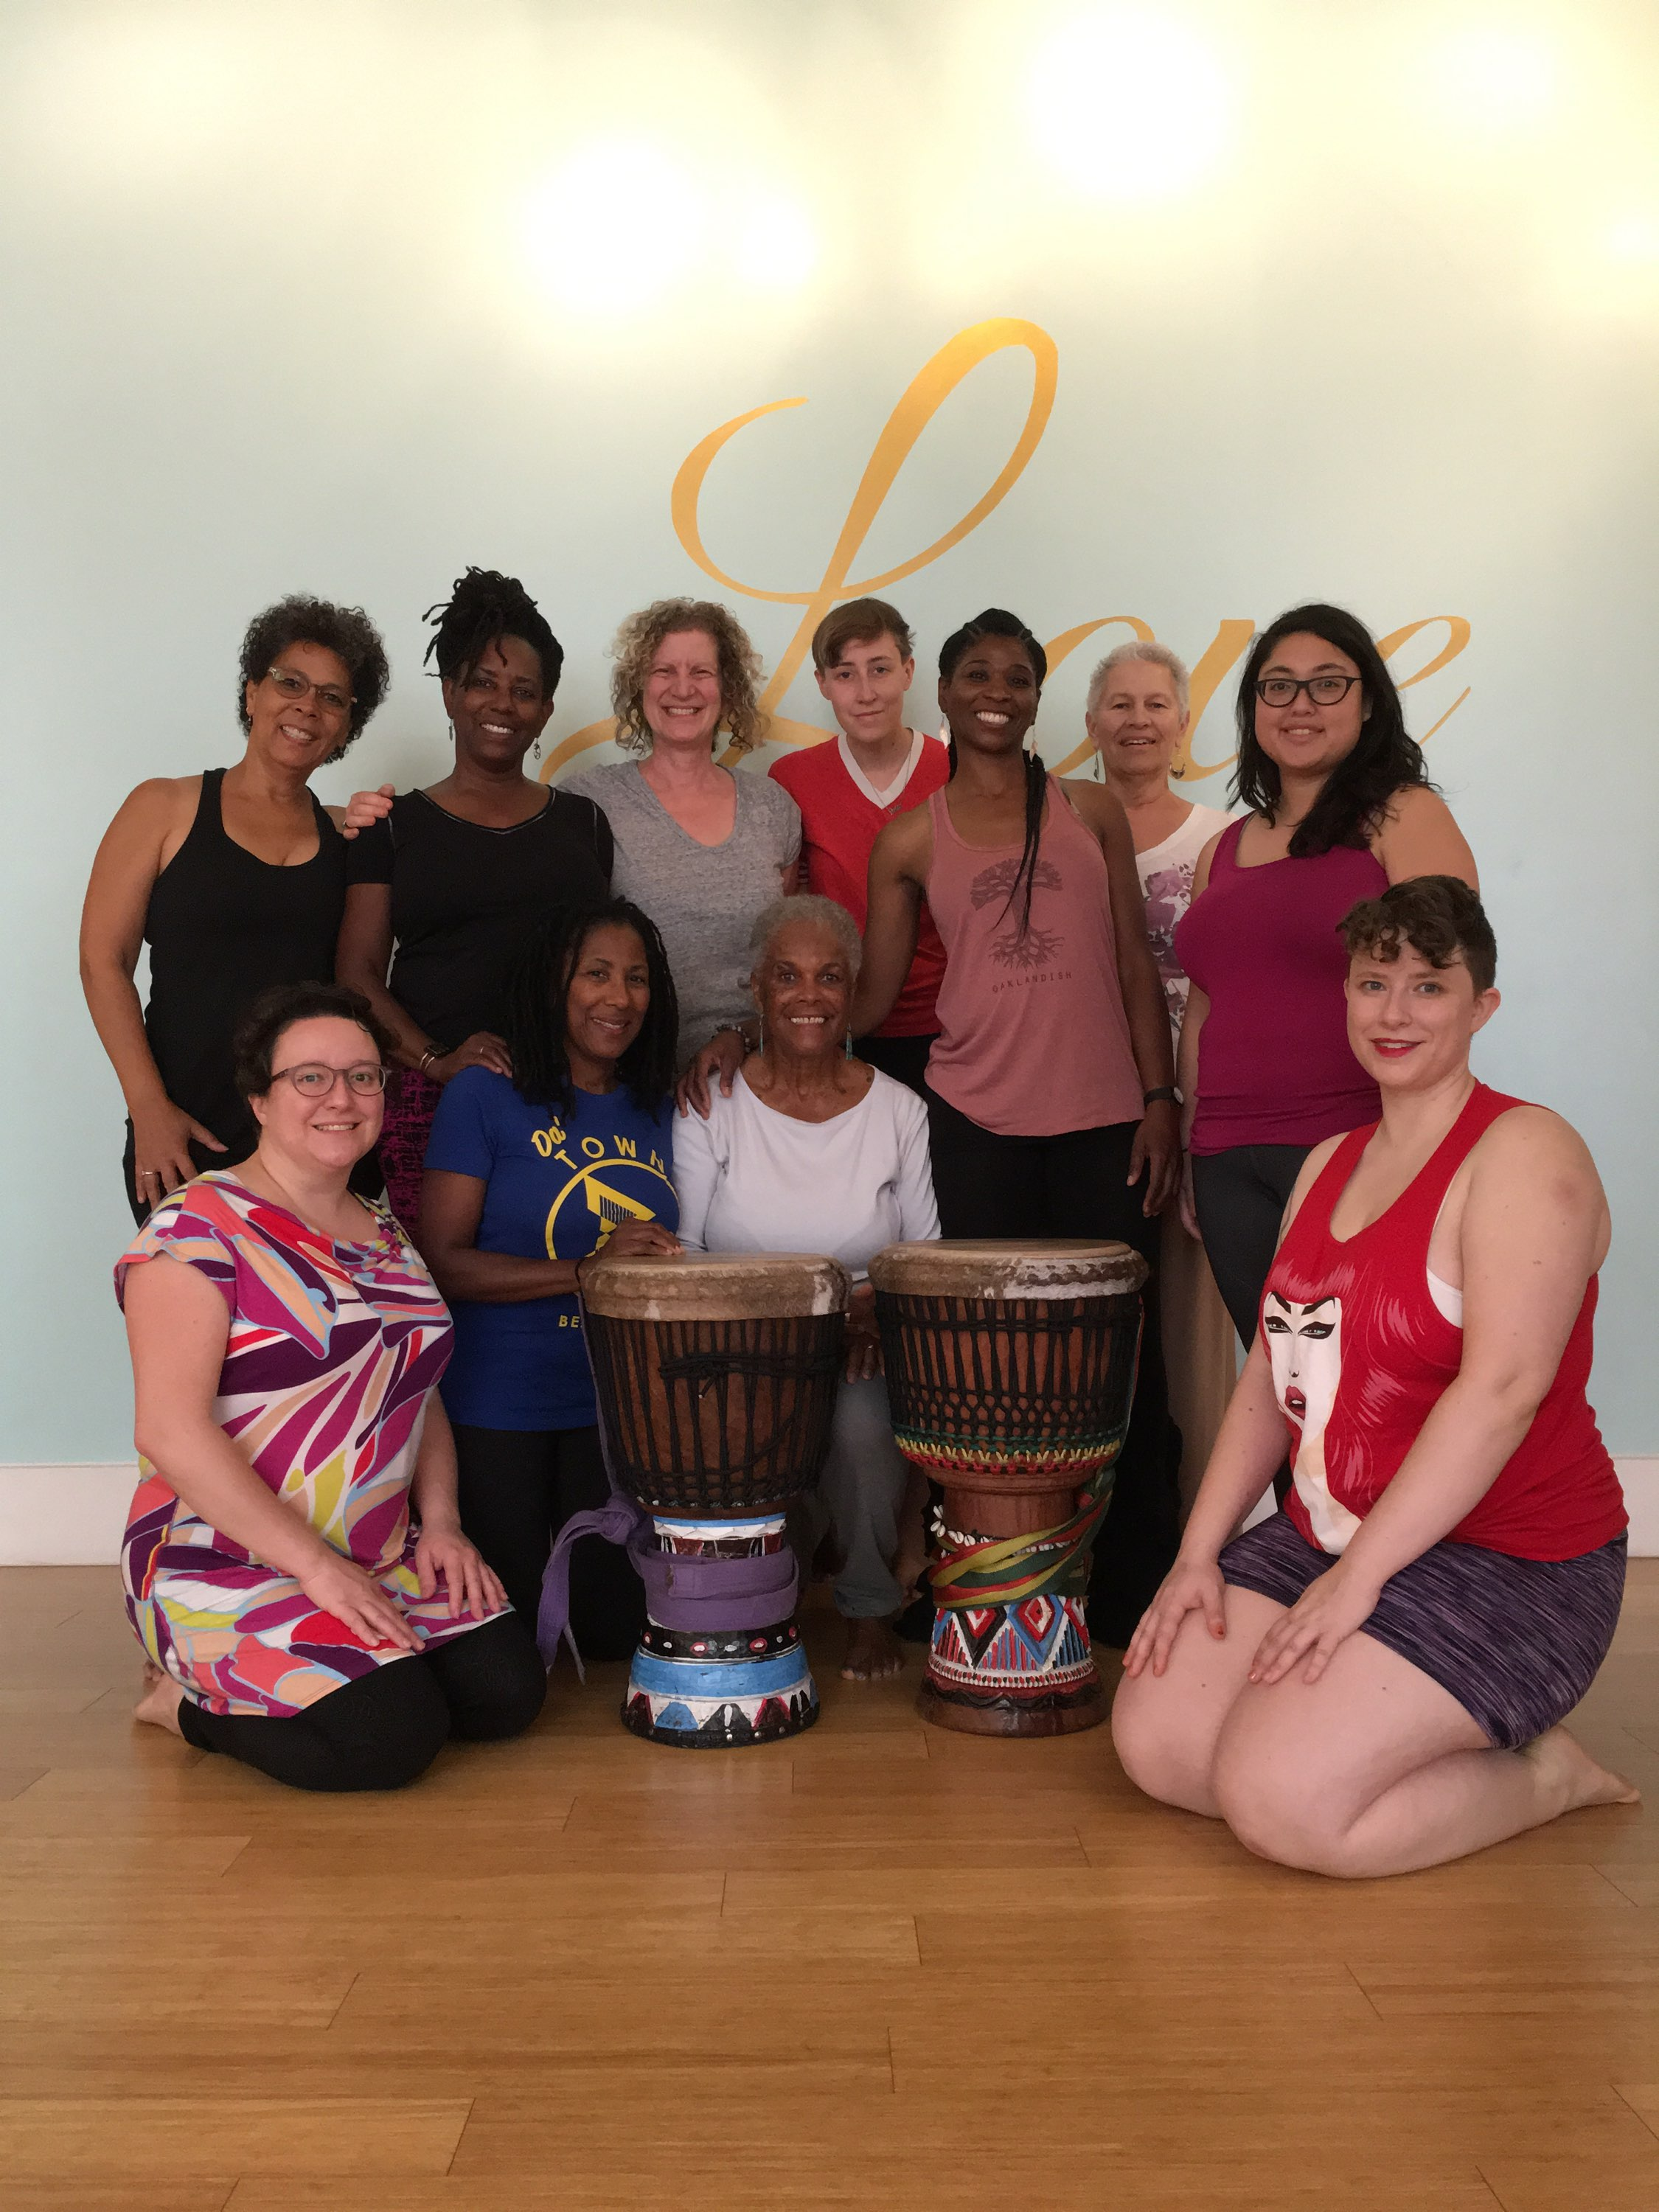 Farcia's Nia Workshop featuring African Healing Dance